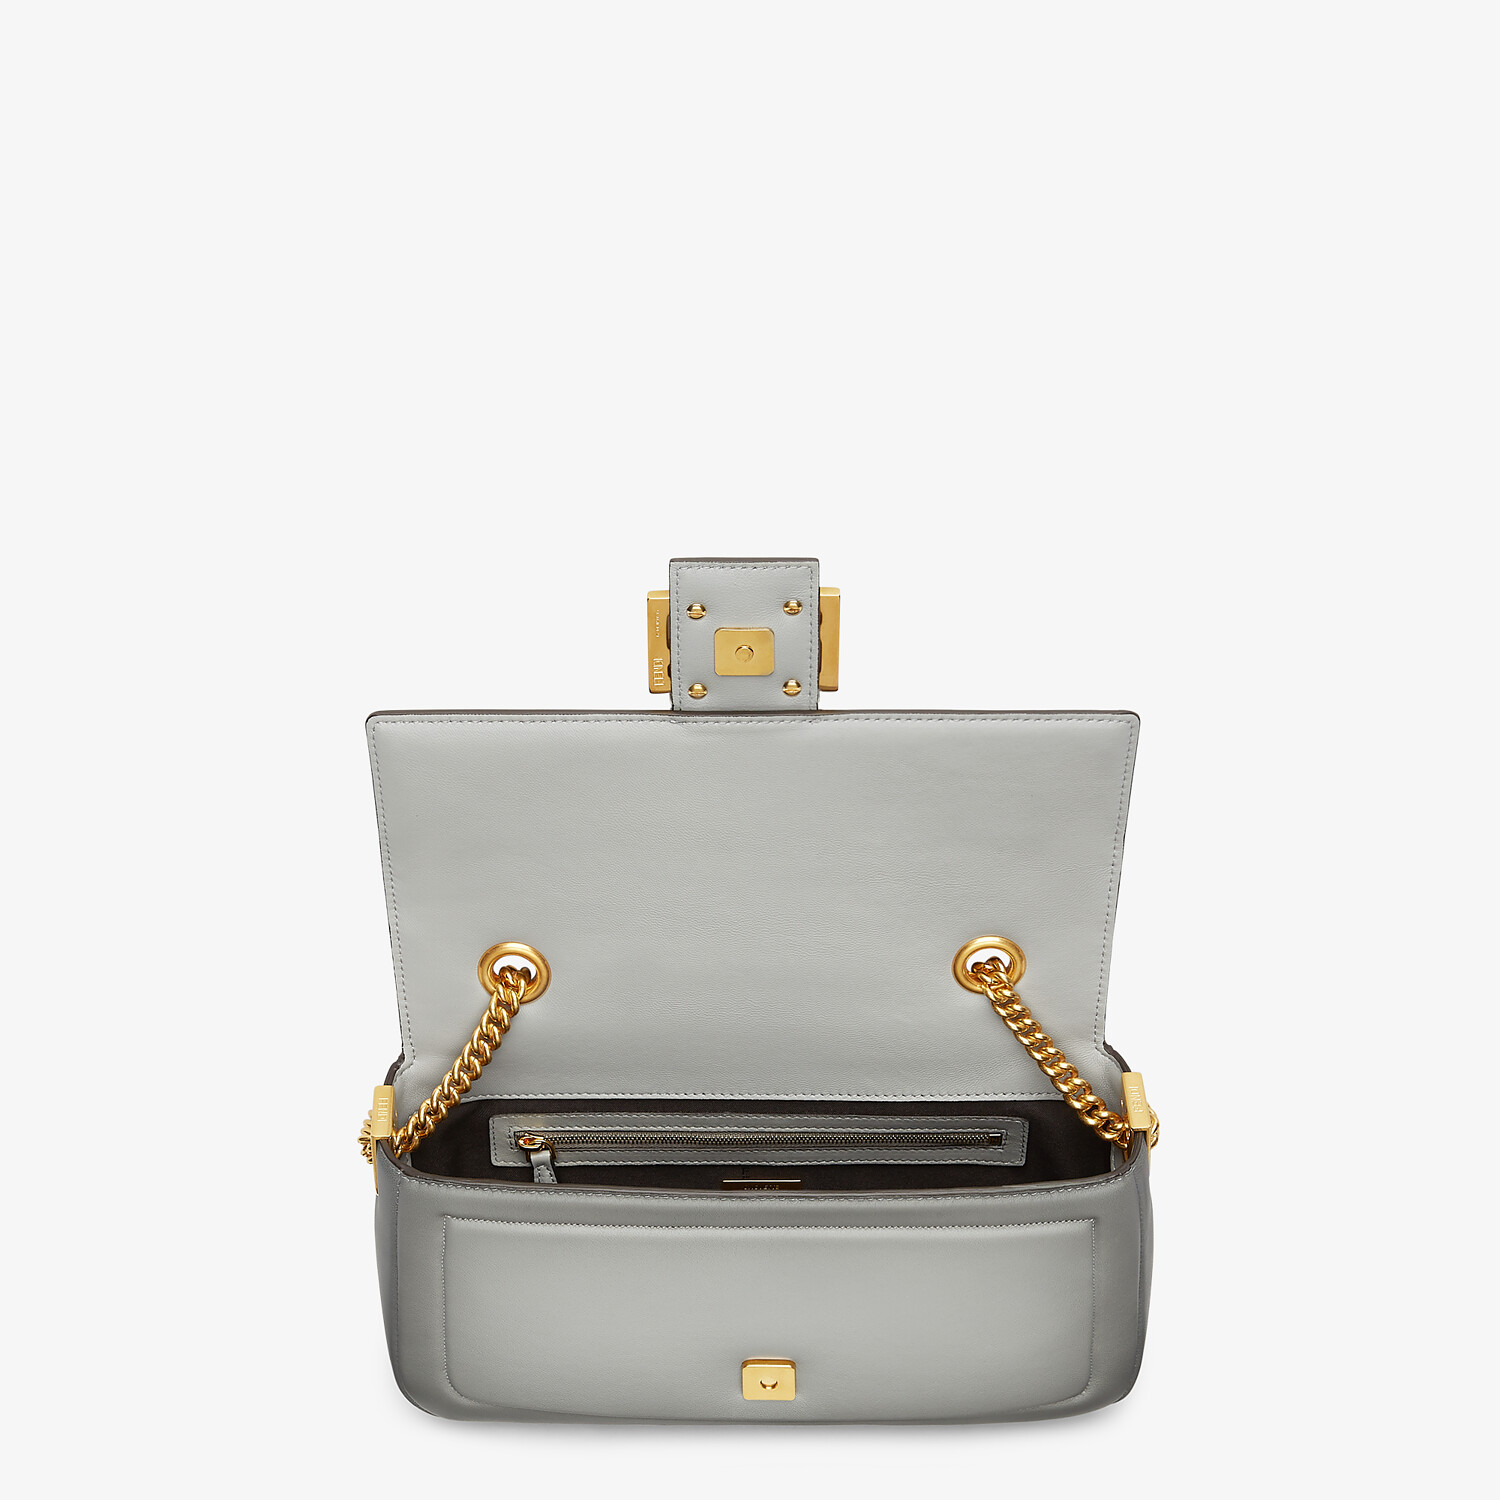 FENDI BAGUETTE CHAIN - gray nappa leather bag - view 4 detail